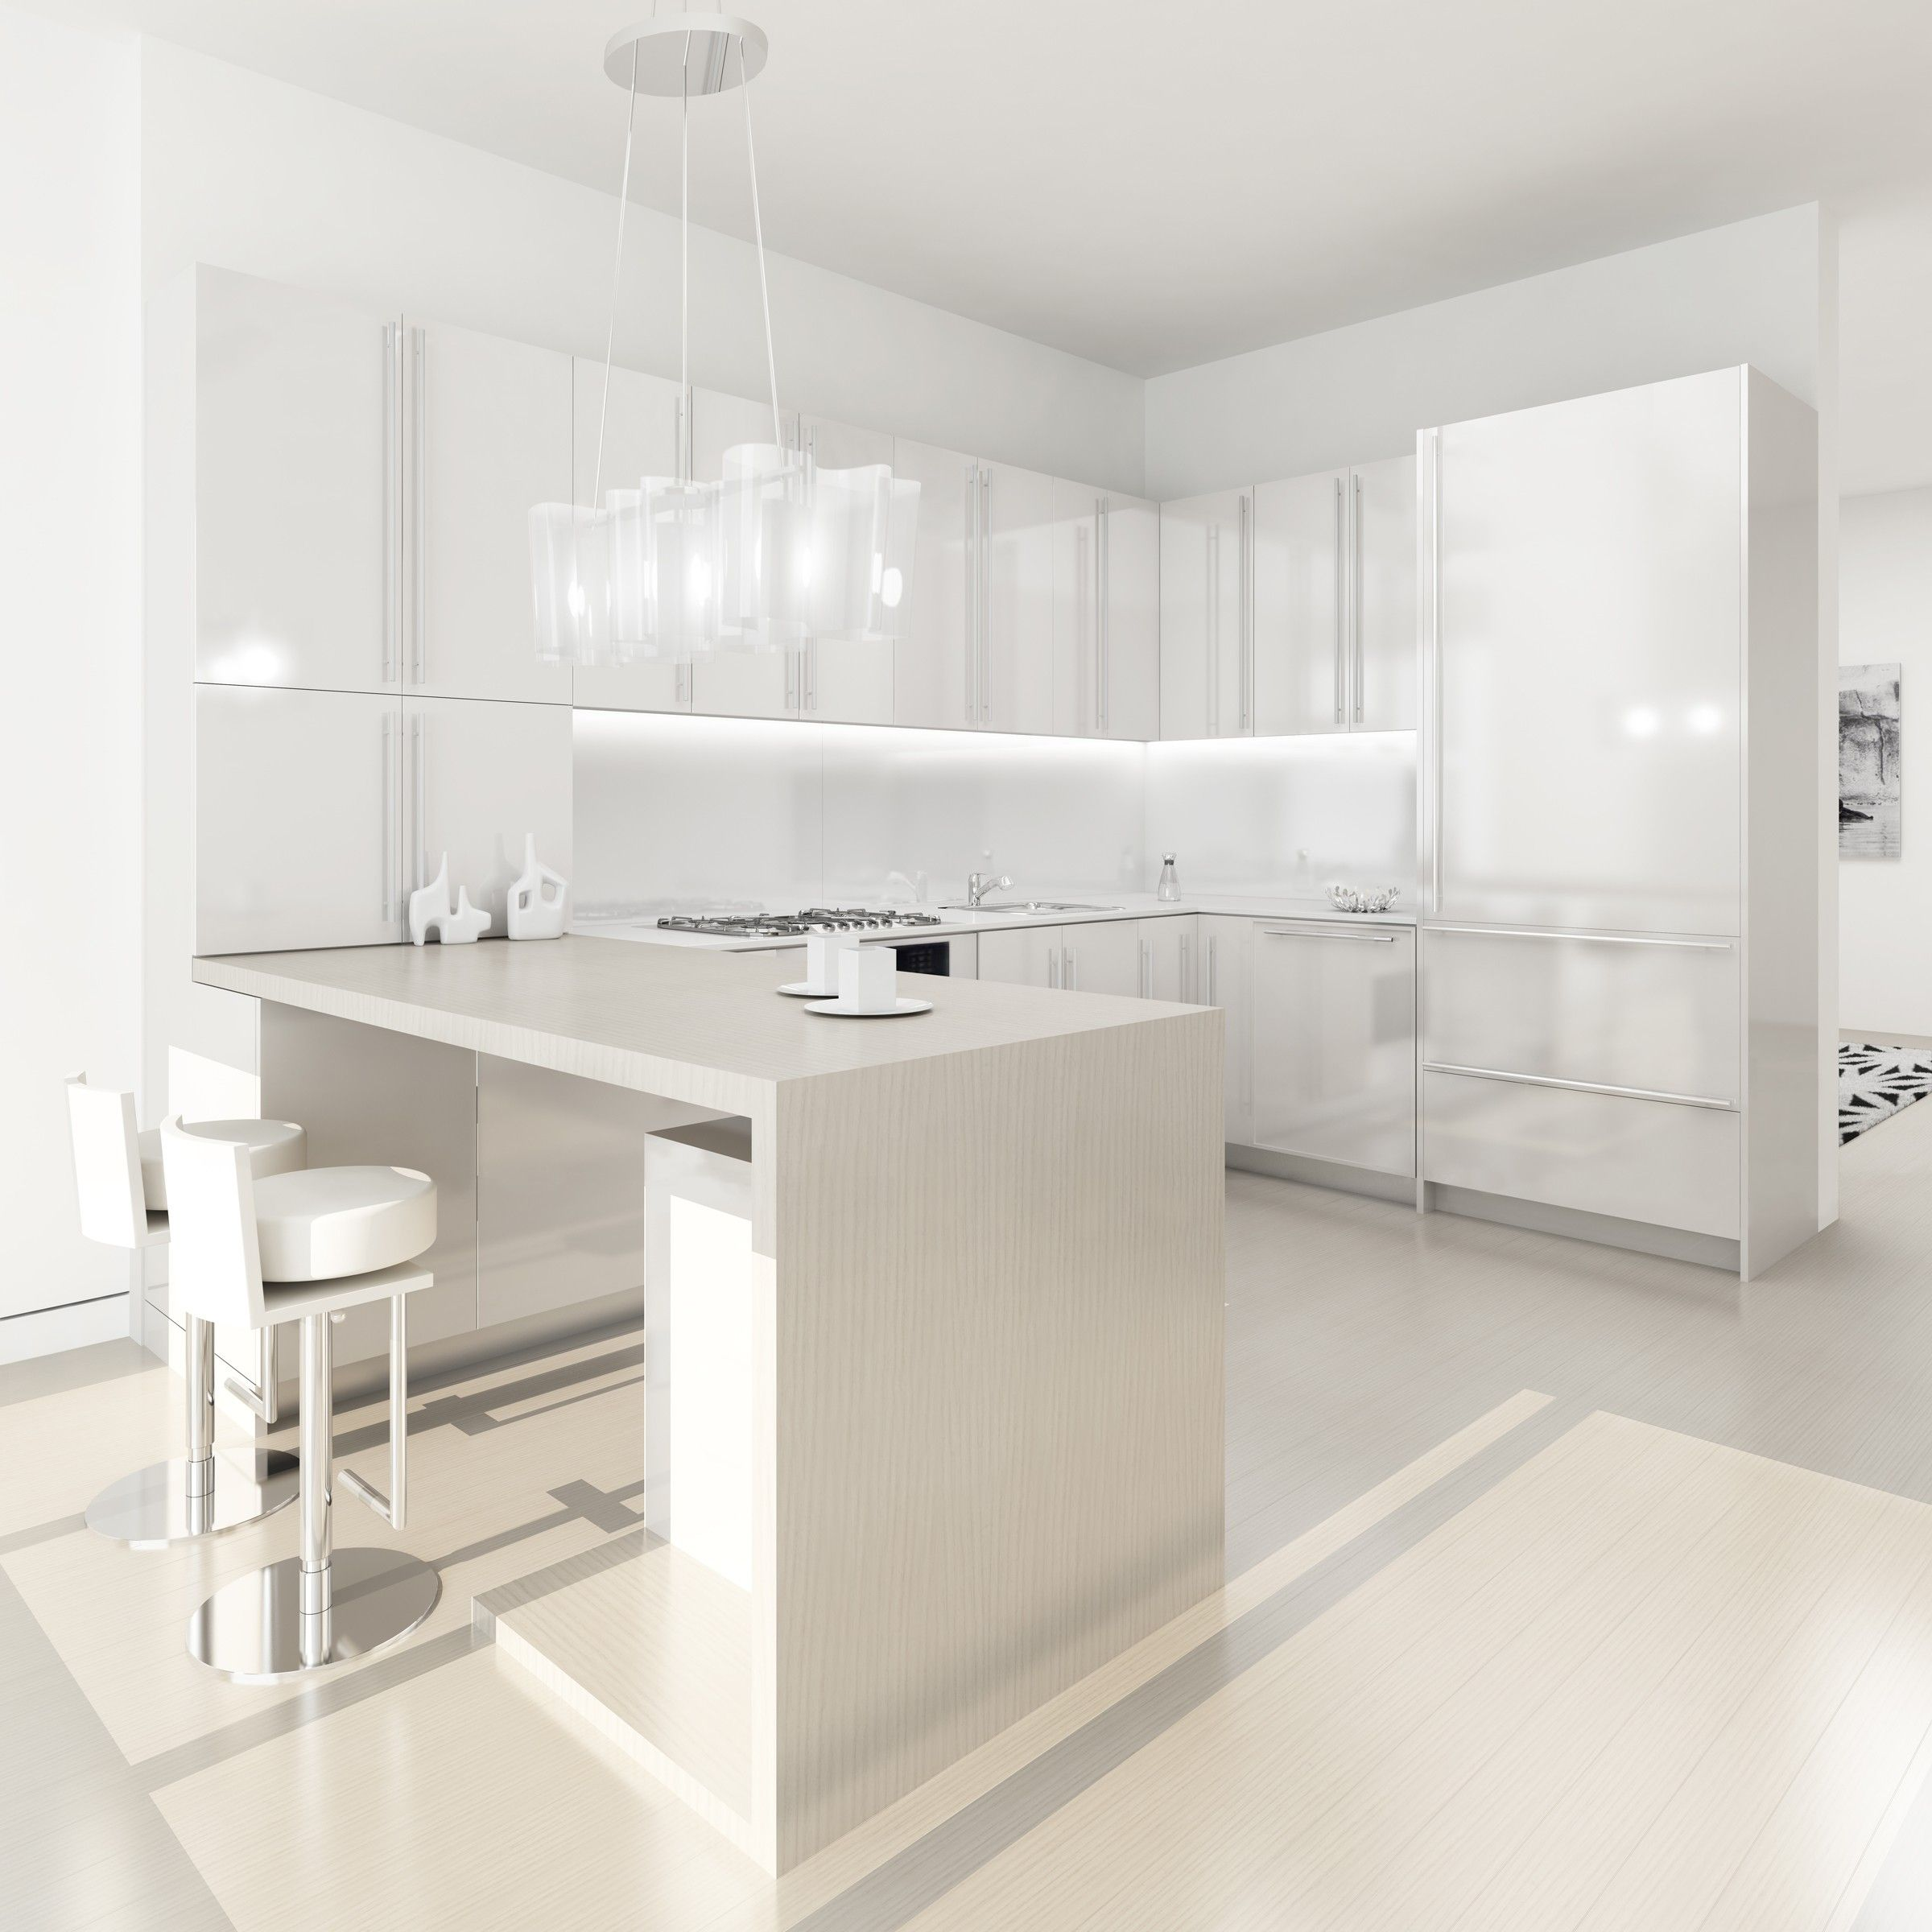 30 modern white kitchen design ideas and inspiration for Small white kitchen ideas